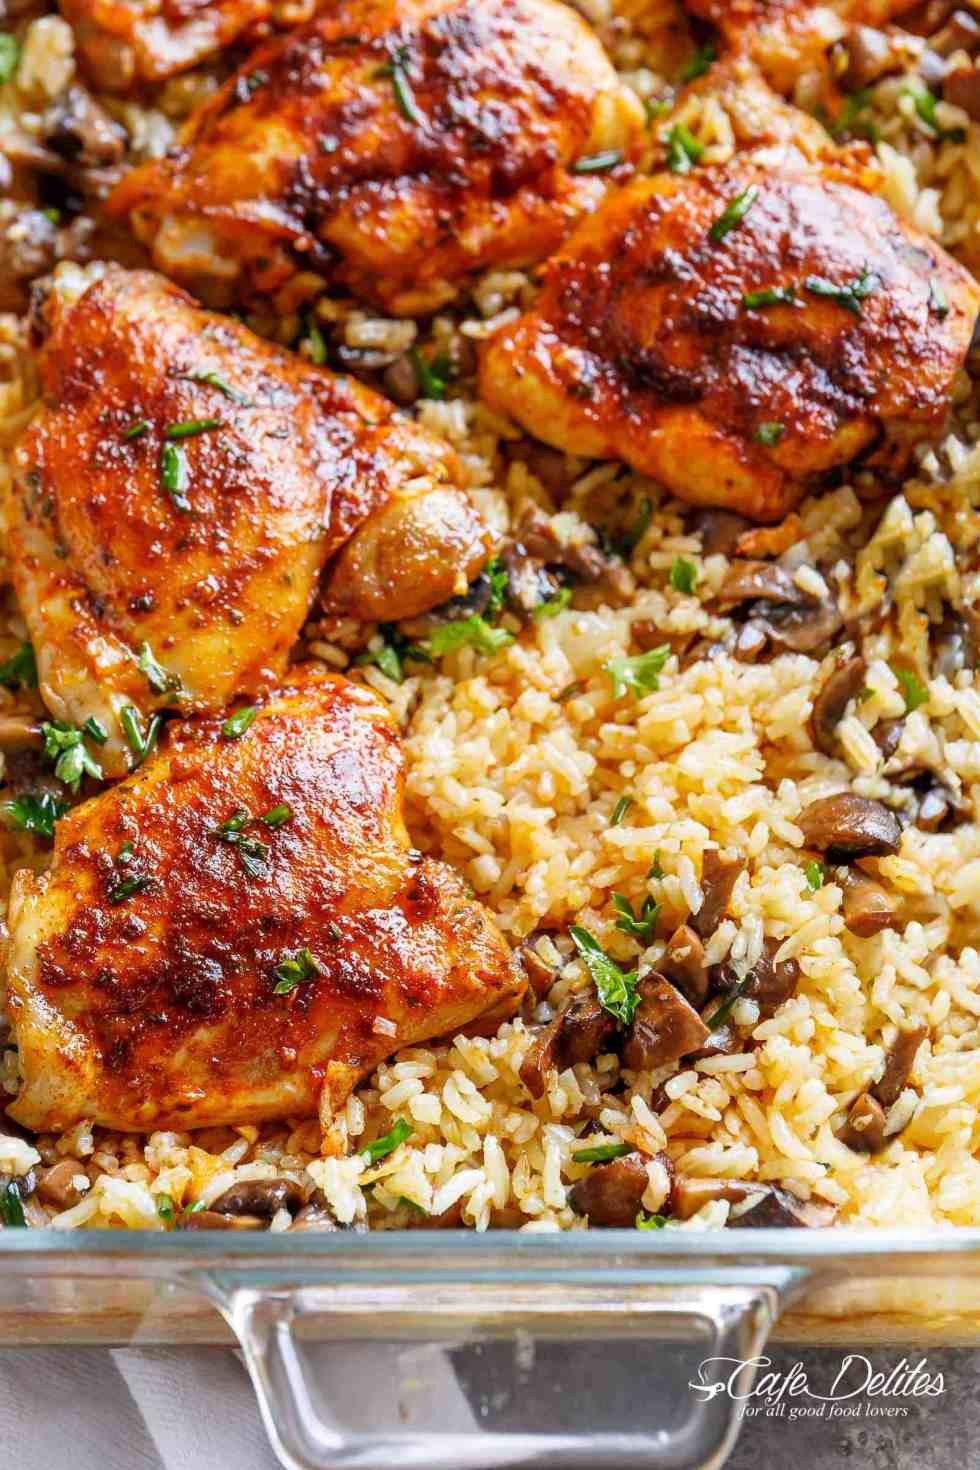 Oven Baked Chicken Recipes  Oven Baked Chicken And Rice Cafe Delites